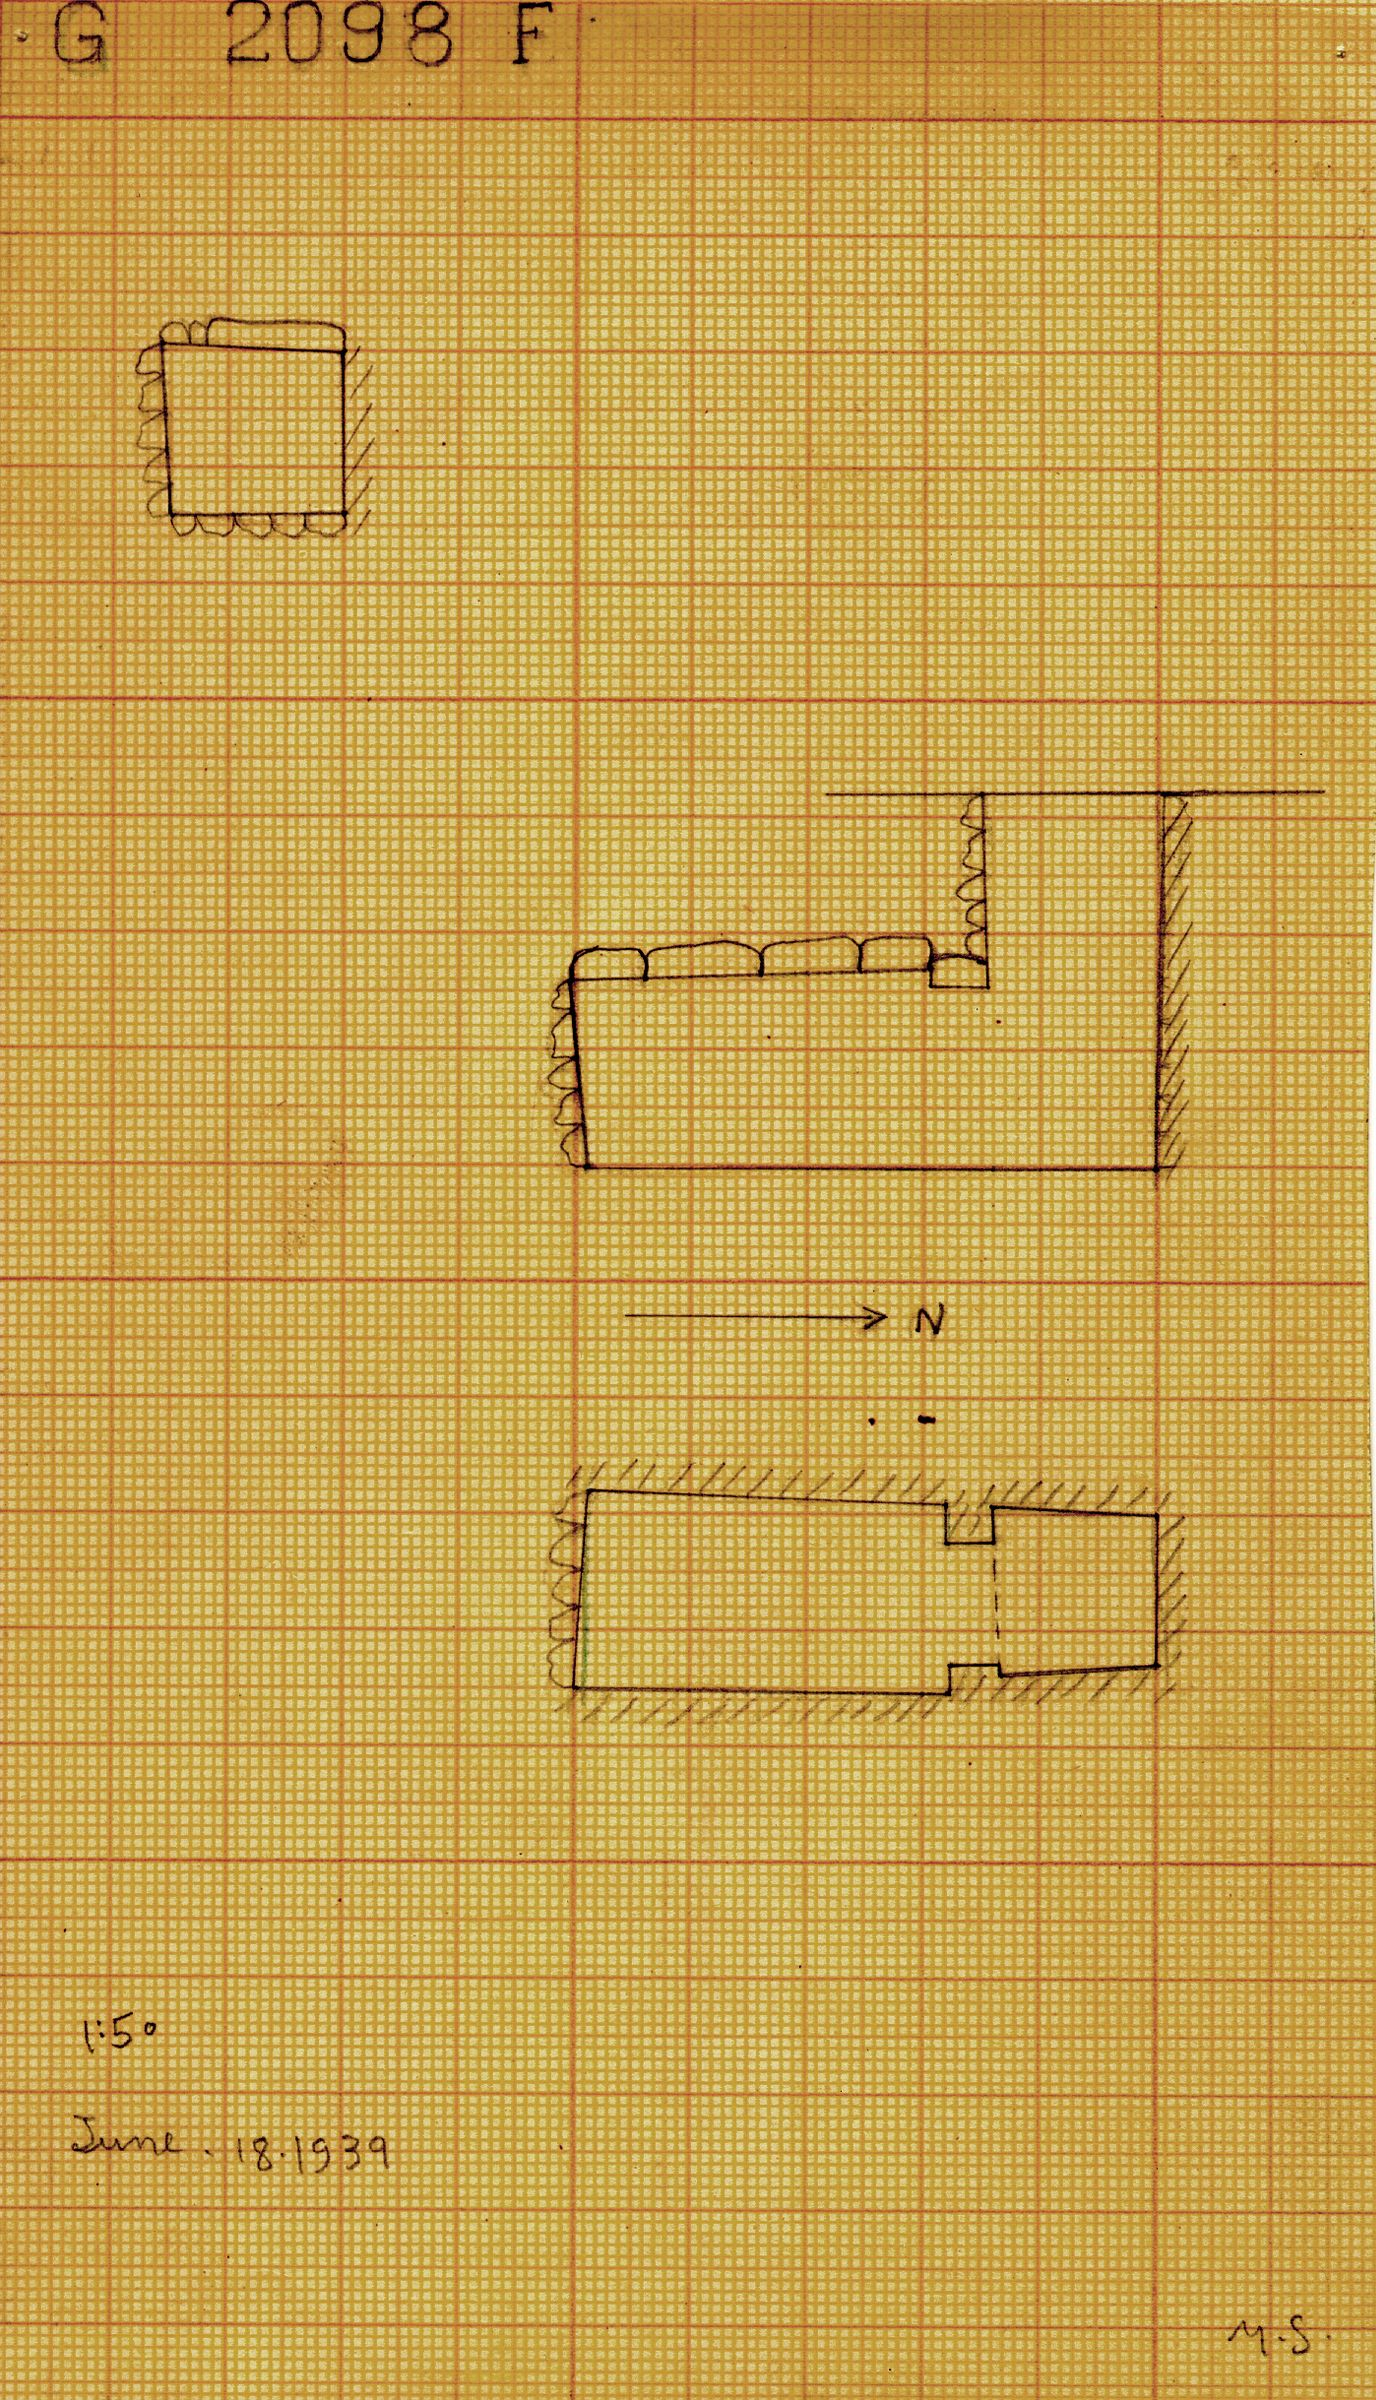 Maps and plans: G 2098, Shaft F